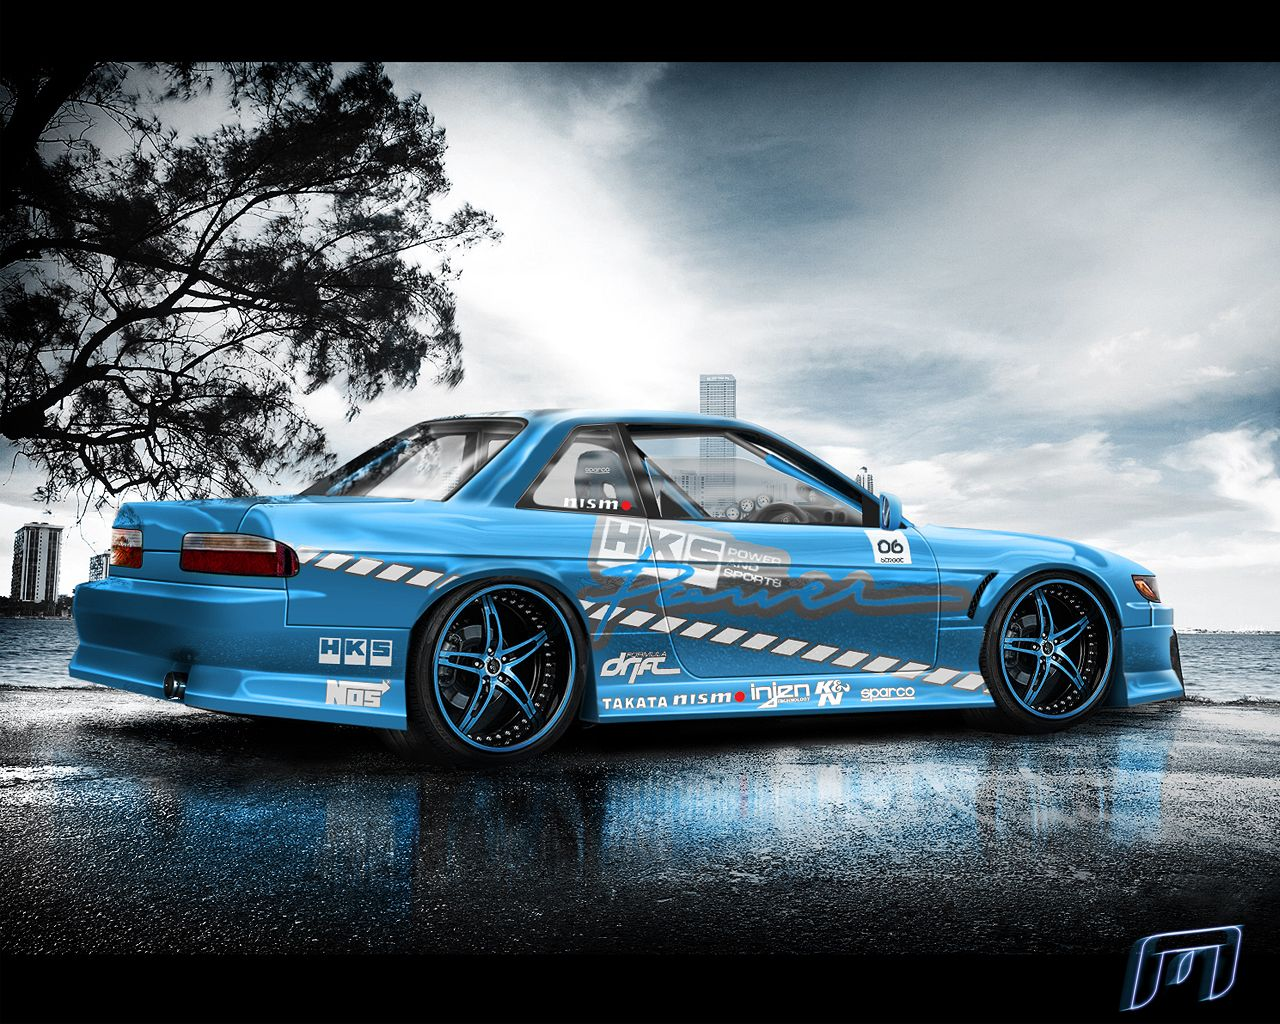 Gentil Nissan Silvia Drift By